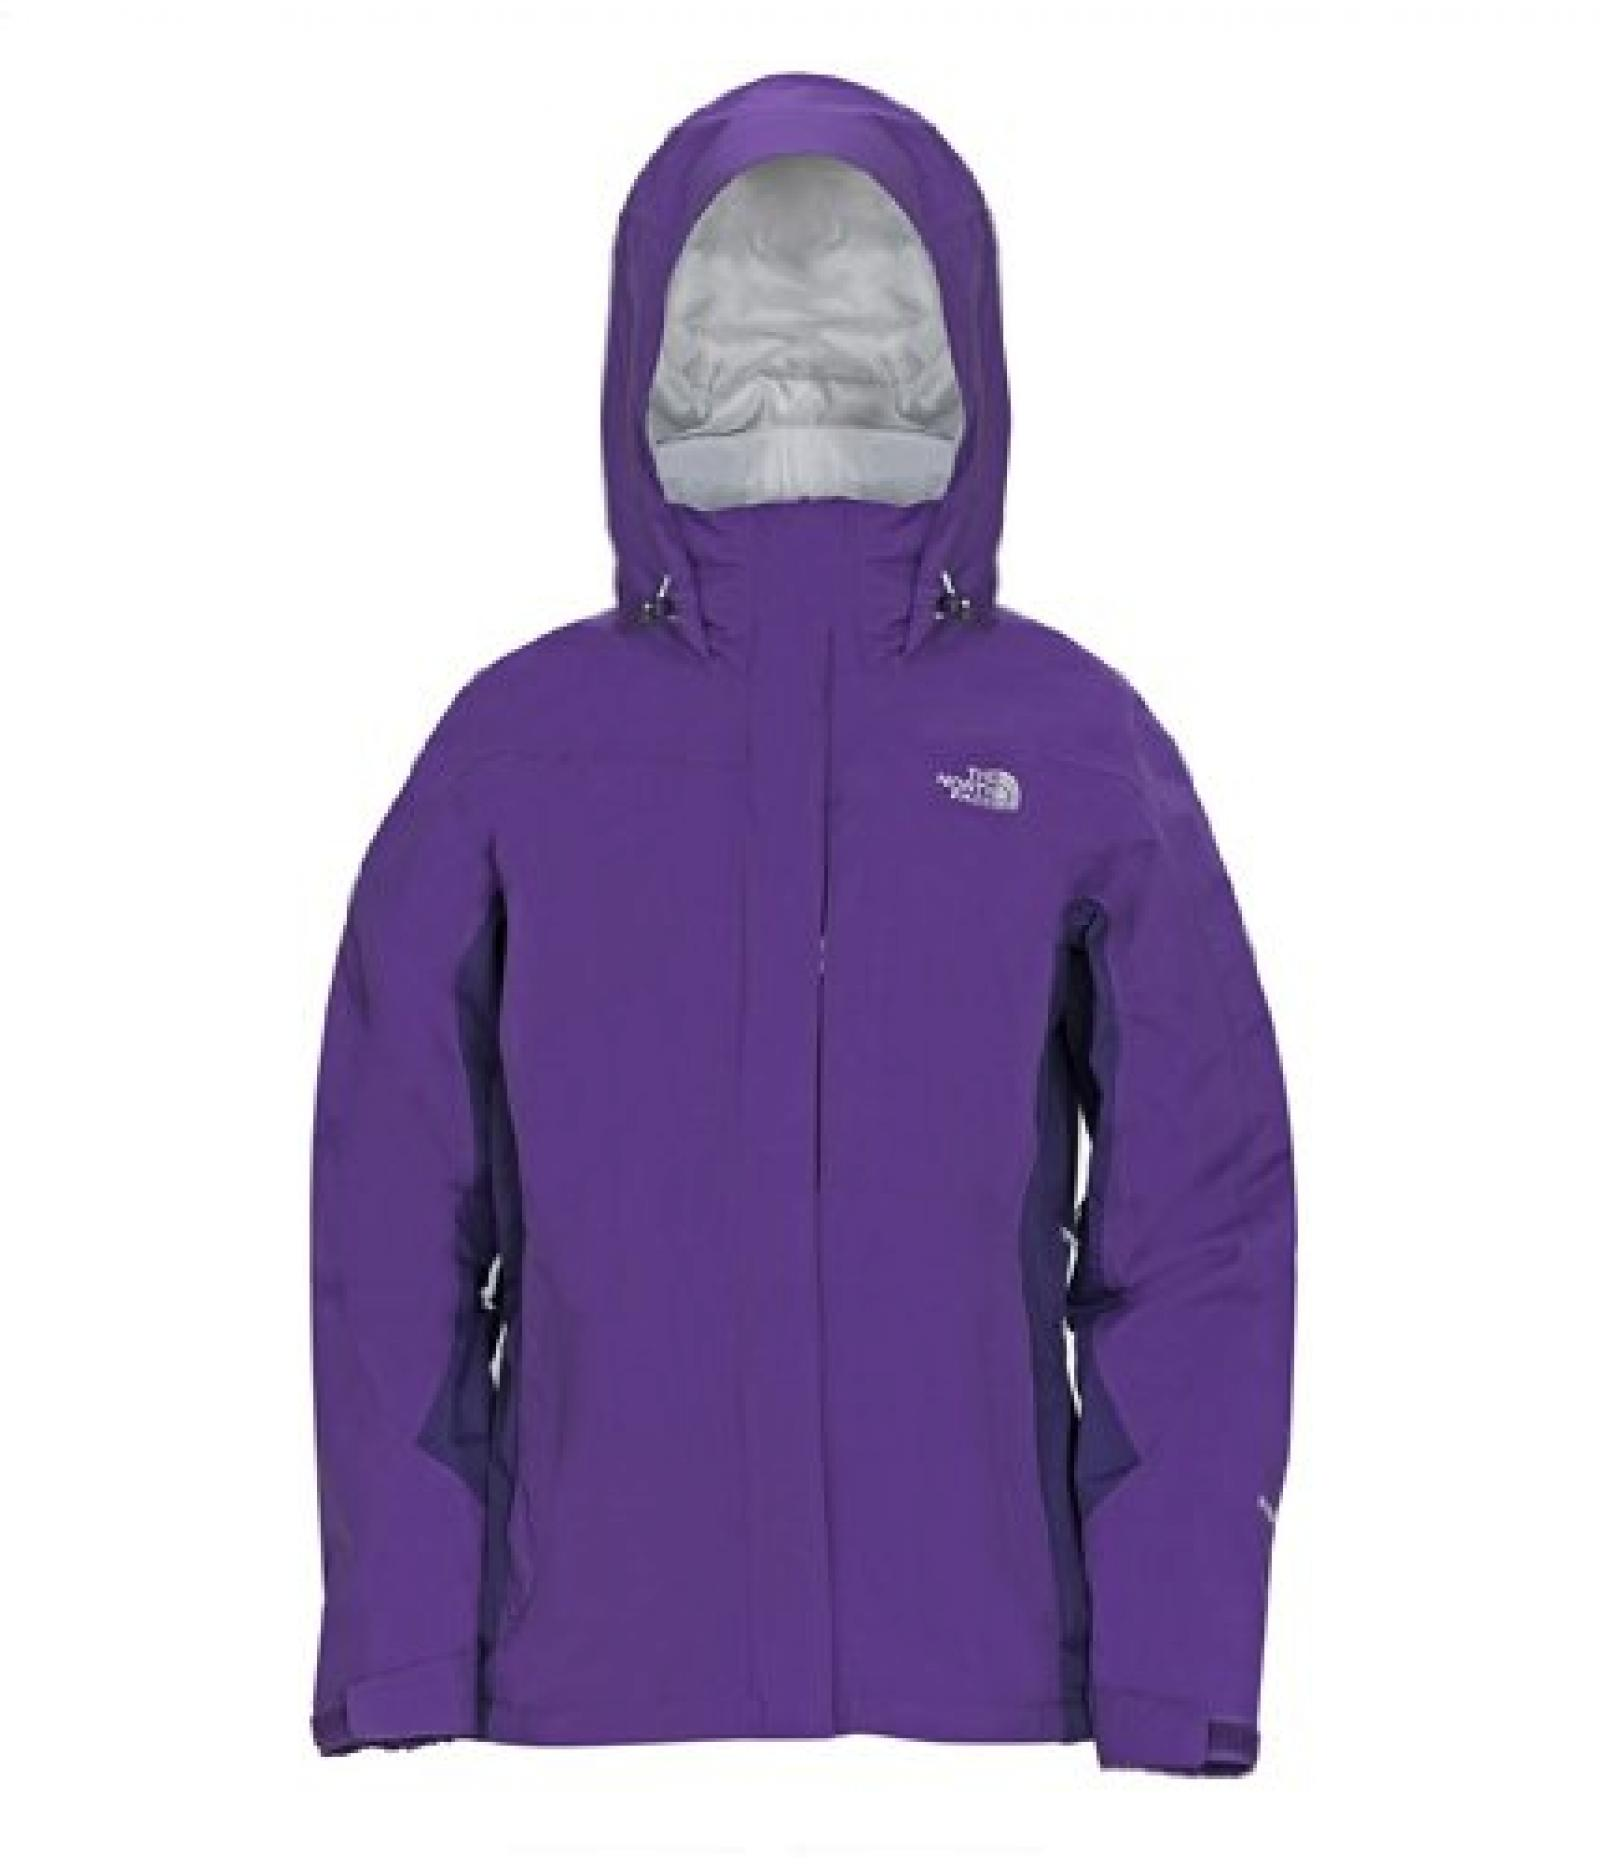 THE NORTH FACE Damen Funktionsjacke EVOLUTION TriClimate